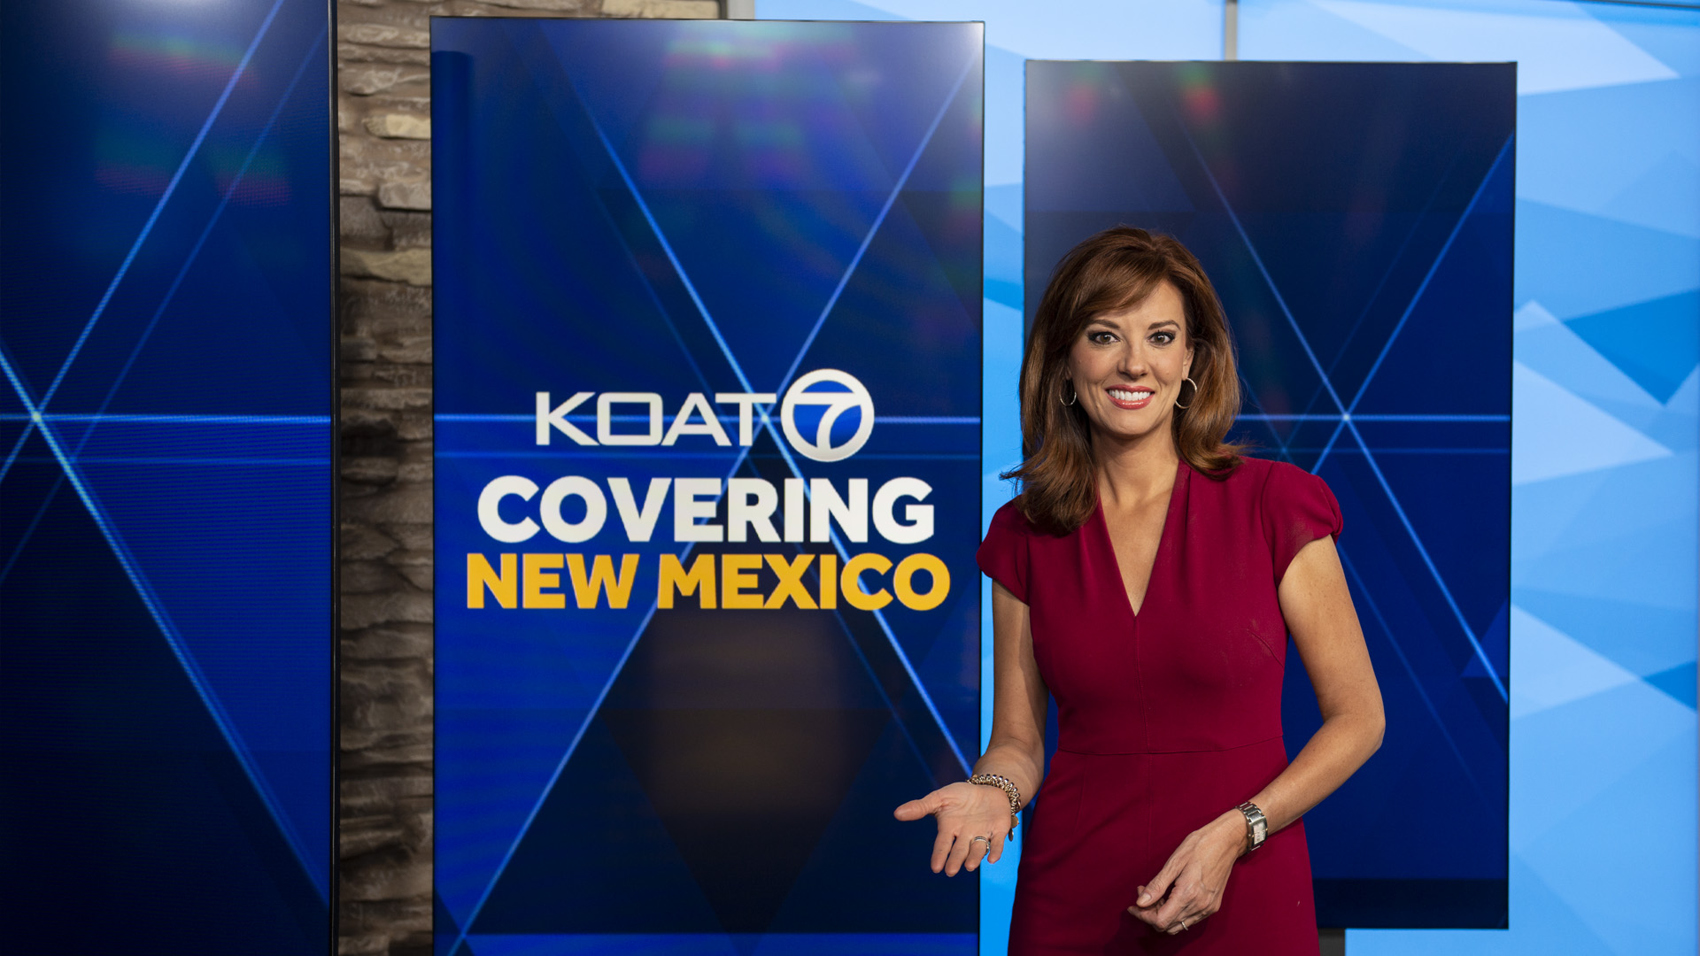 ncs_KOAT-TV-Studio-Devlin_00010